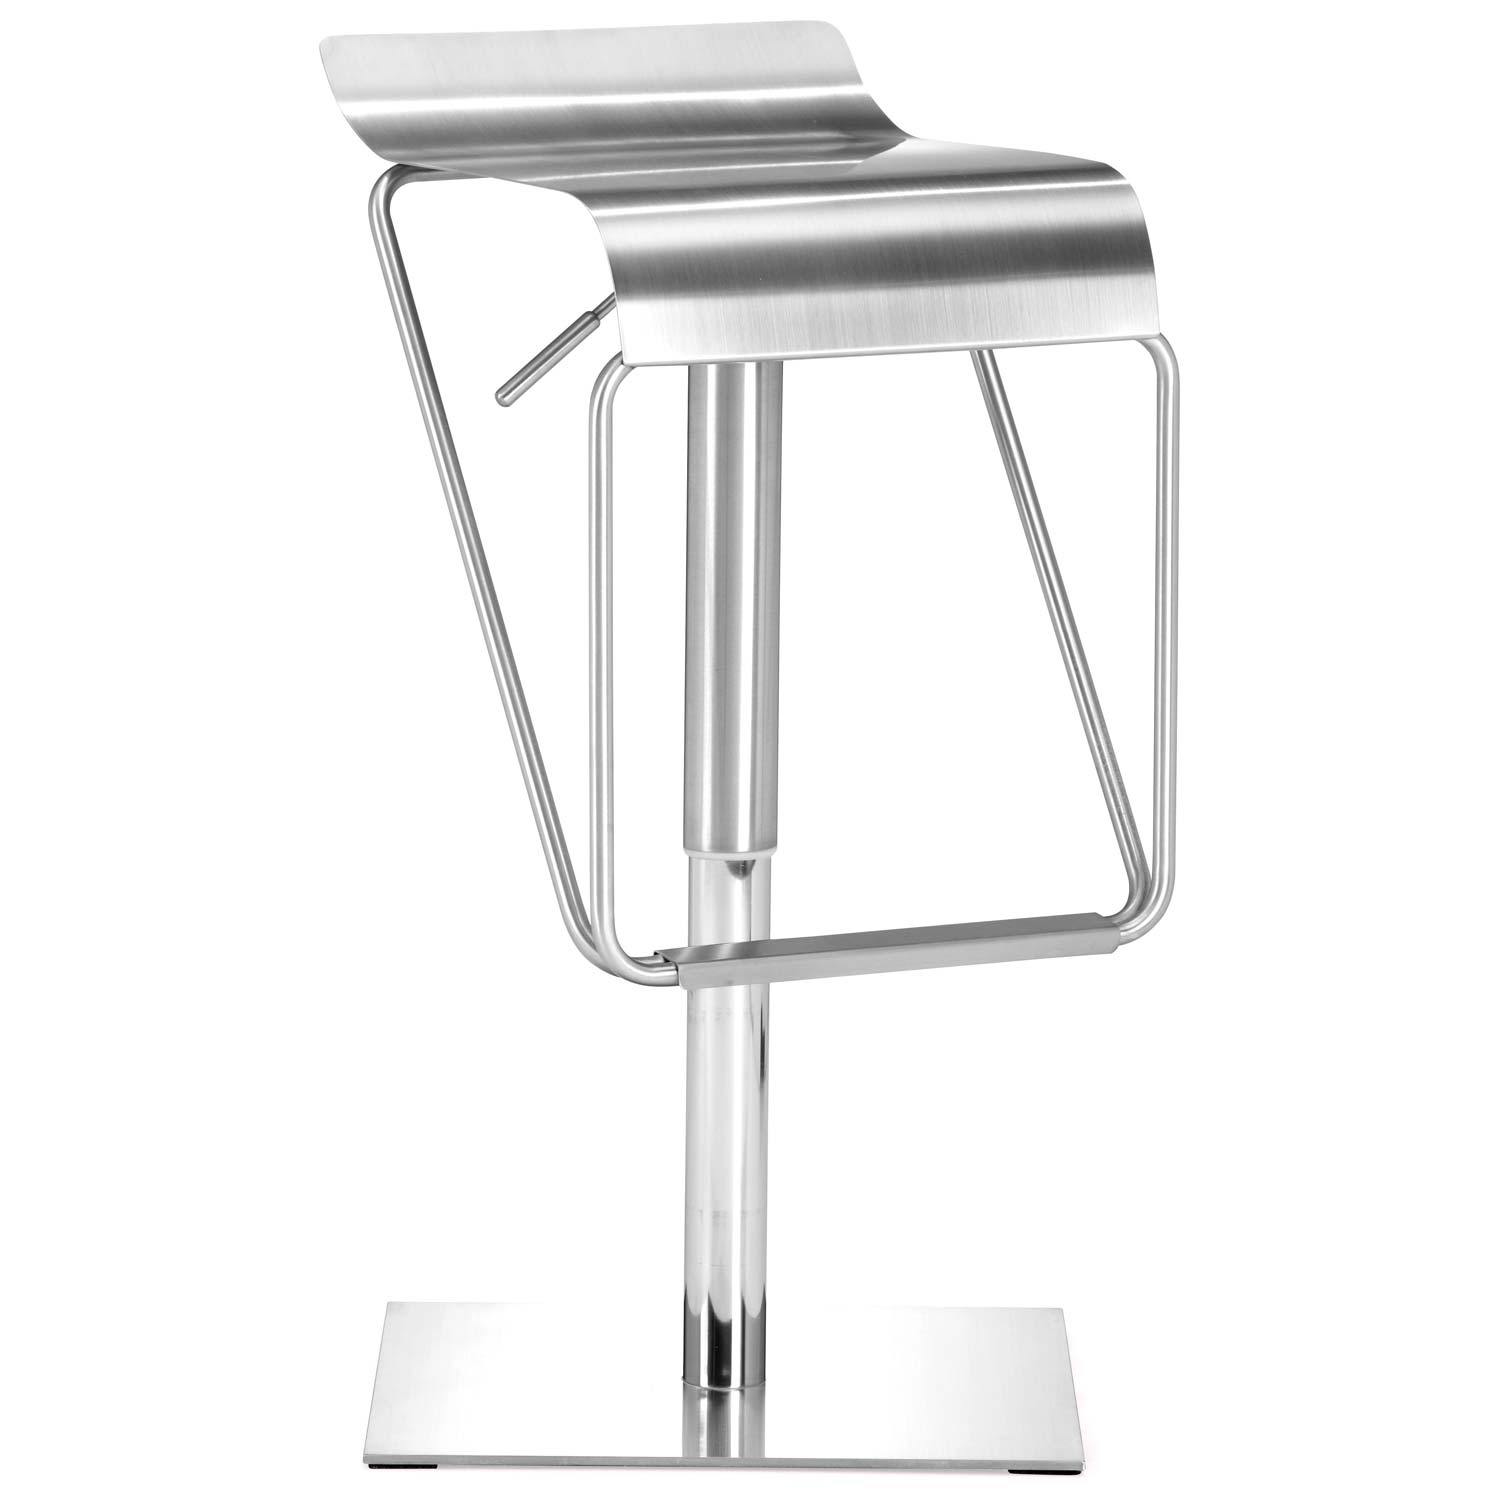 Dazzer Piston Style Adjustable Bar Stool - Stainless Steel